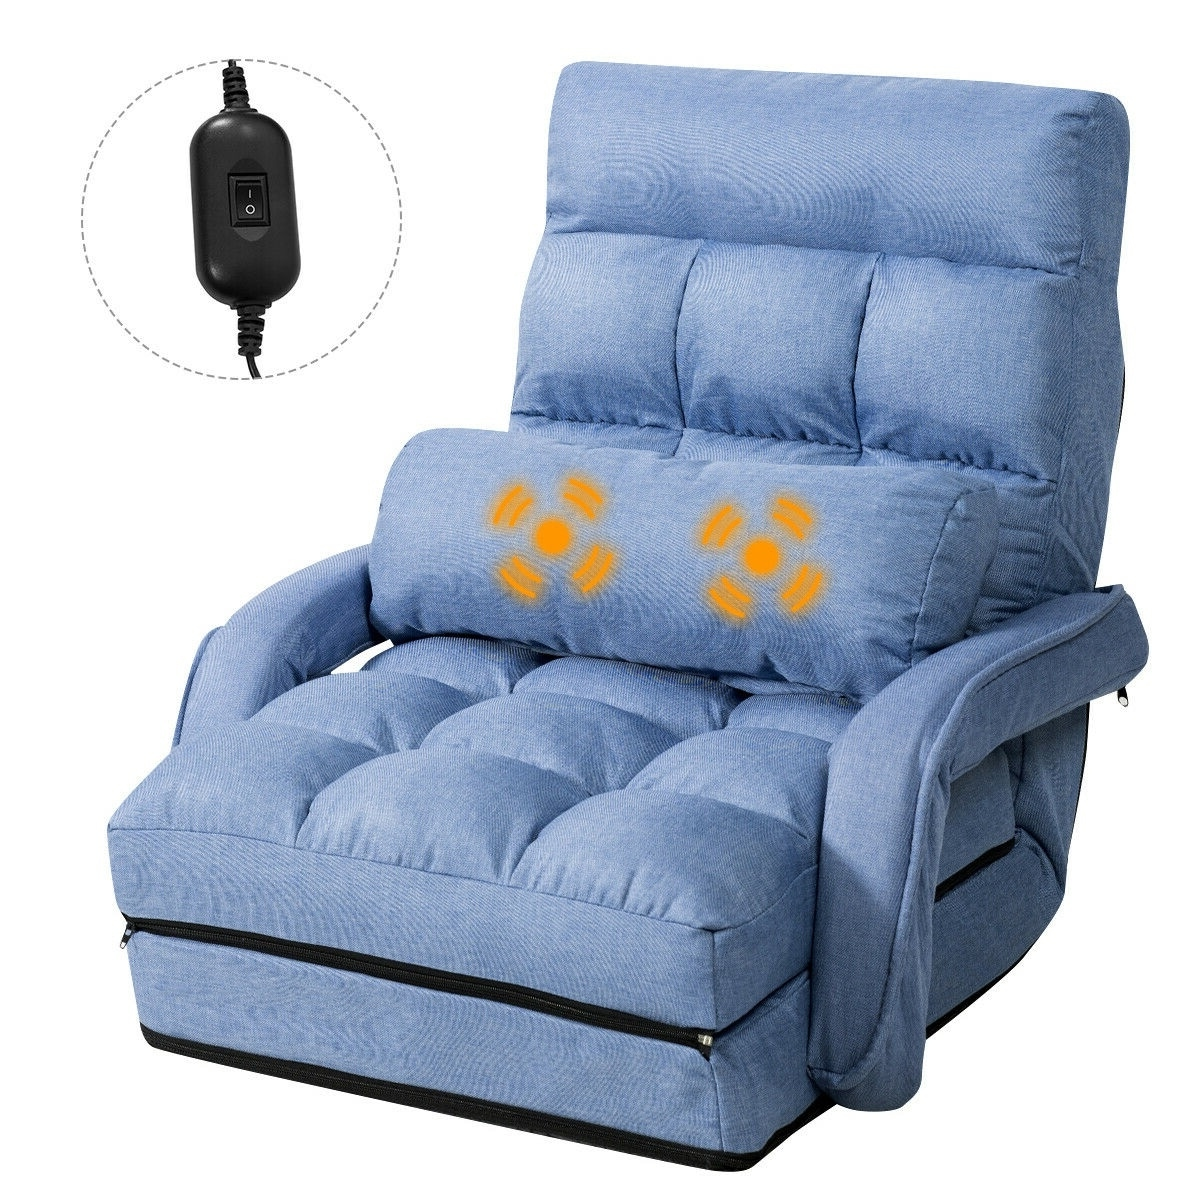 Gymax Blue Folding Lazy Sofa Floor Chair Sofa Lounger Bed With Armrests And Pillow